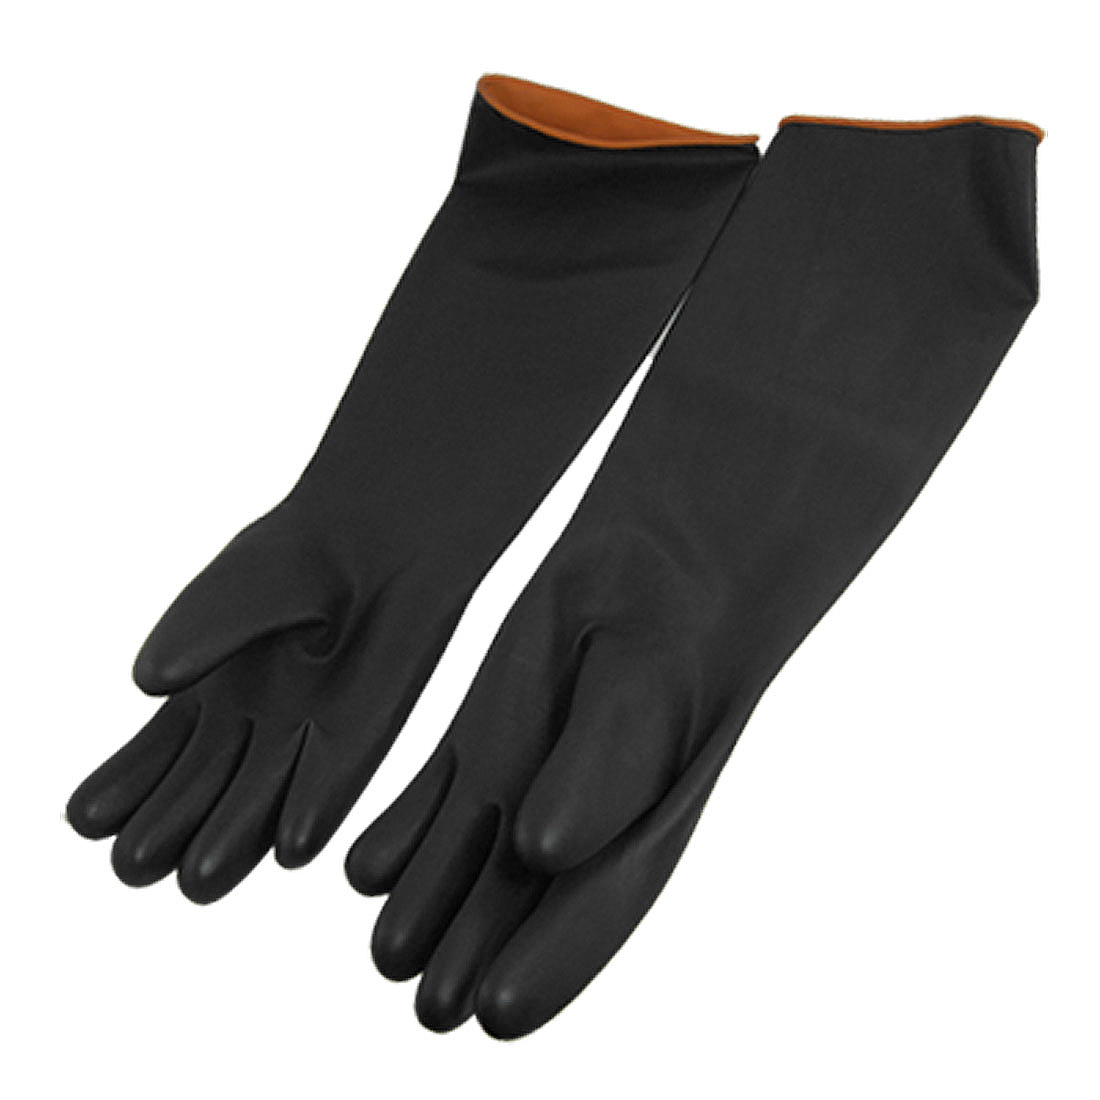 "20.5"" Length Protective Industry Anti Chemical Acid Alkali Rubber Work Gloves Black"